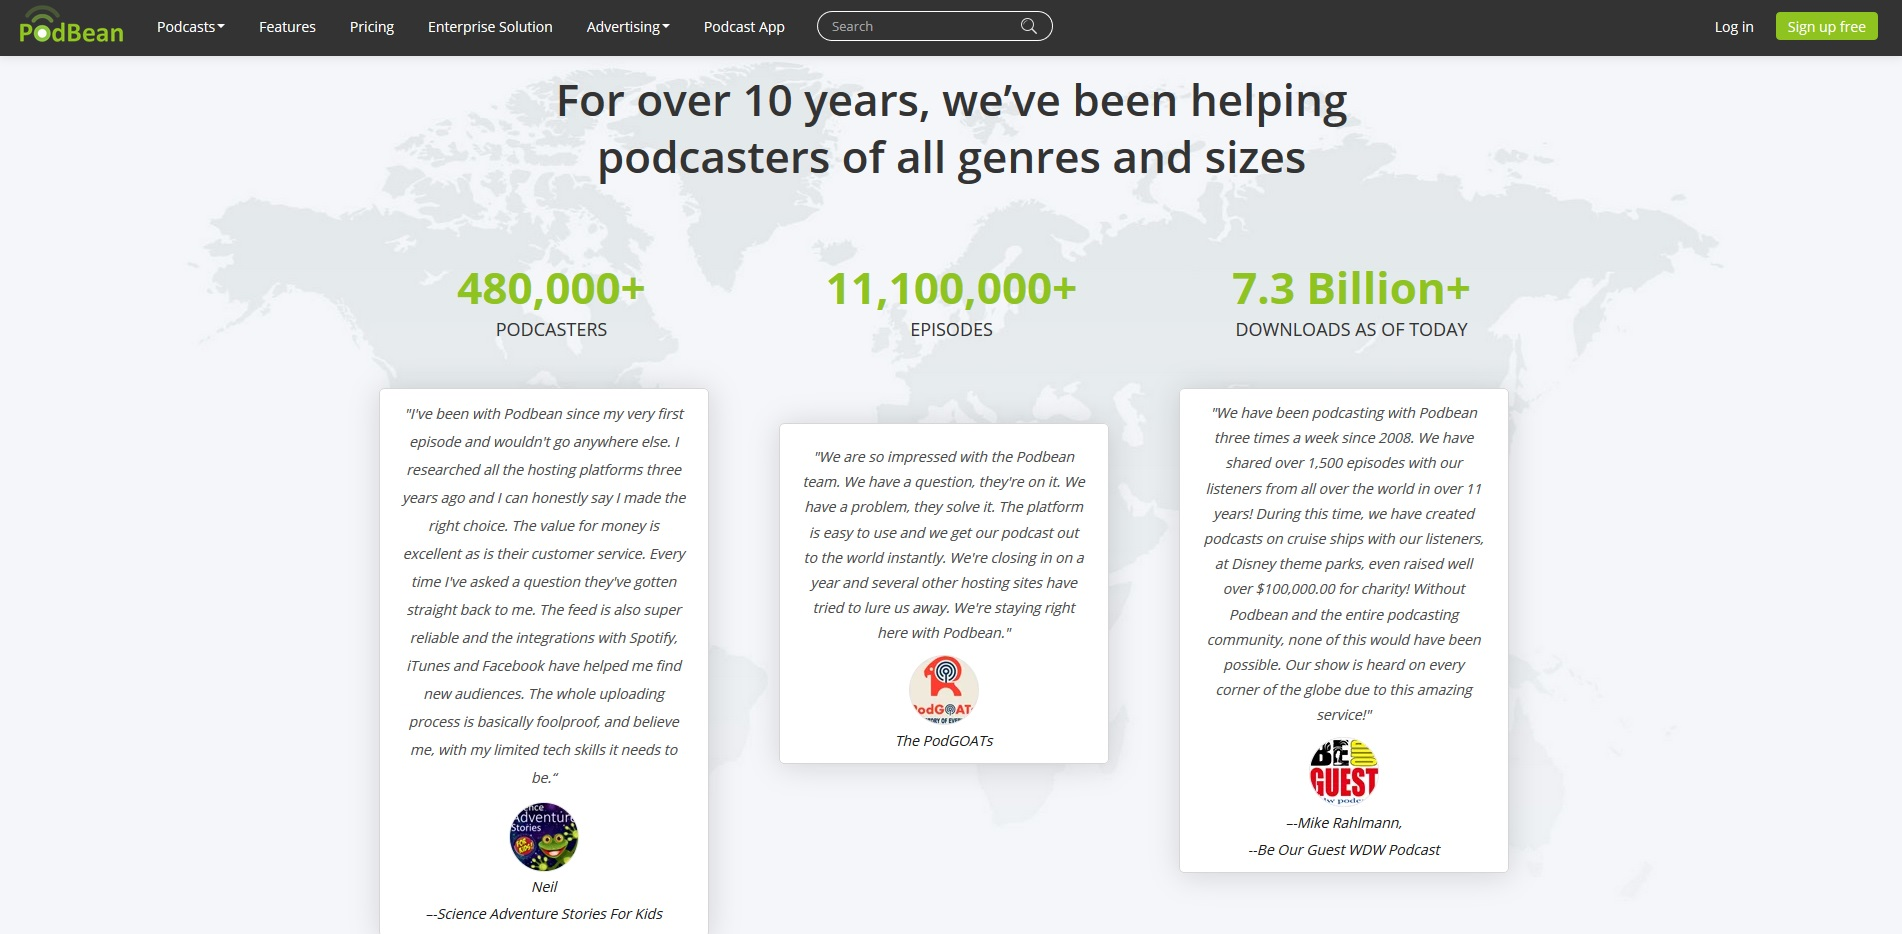 PodBean - helping podcasters of all genres and sizes